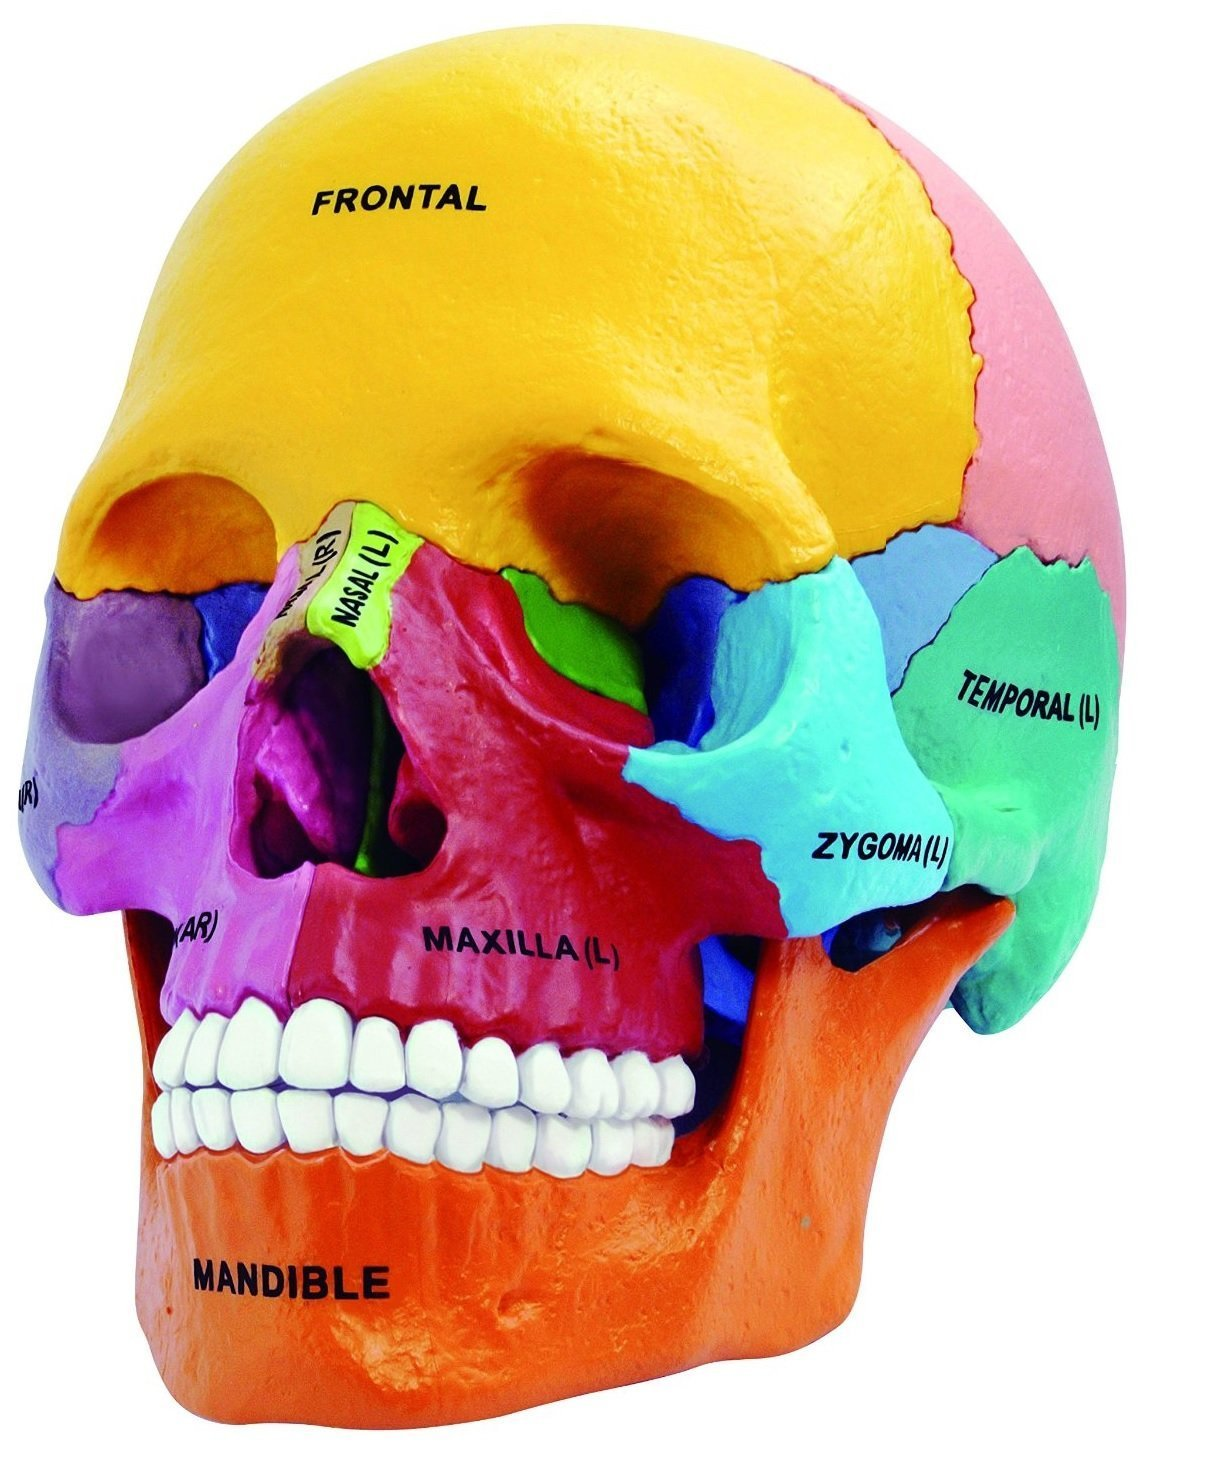 4D Master 26087 4D Anatomy Didactic Exploded Skull Model